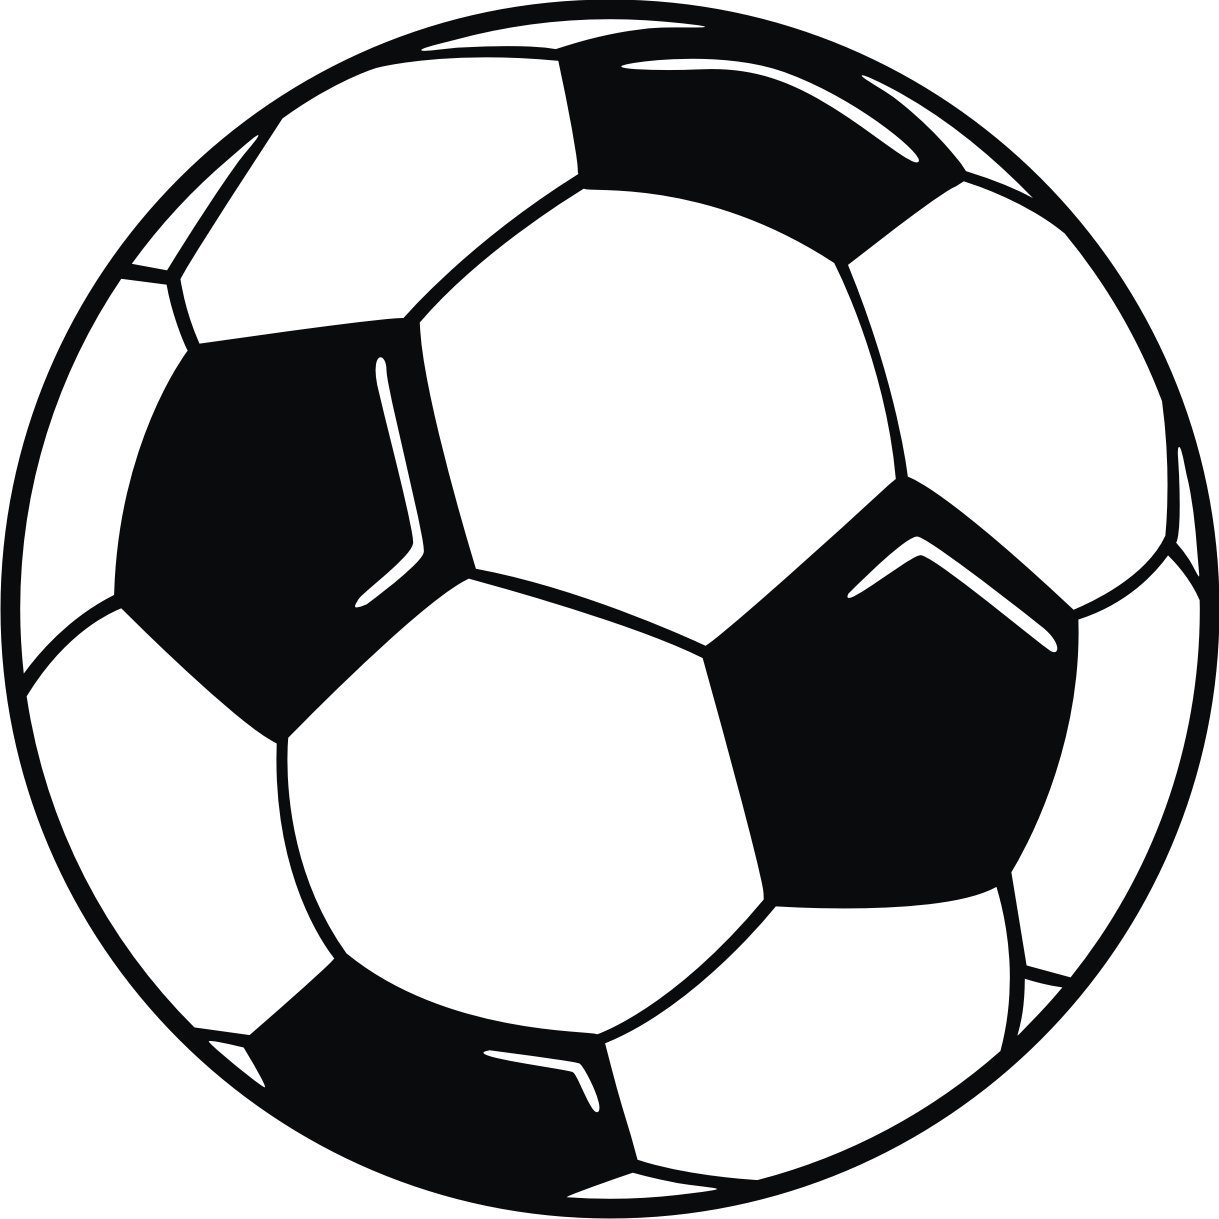 1219x1219 Soccer Ball Border Clip Art Free Clipart Images